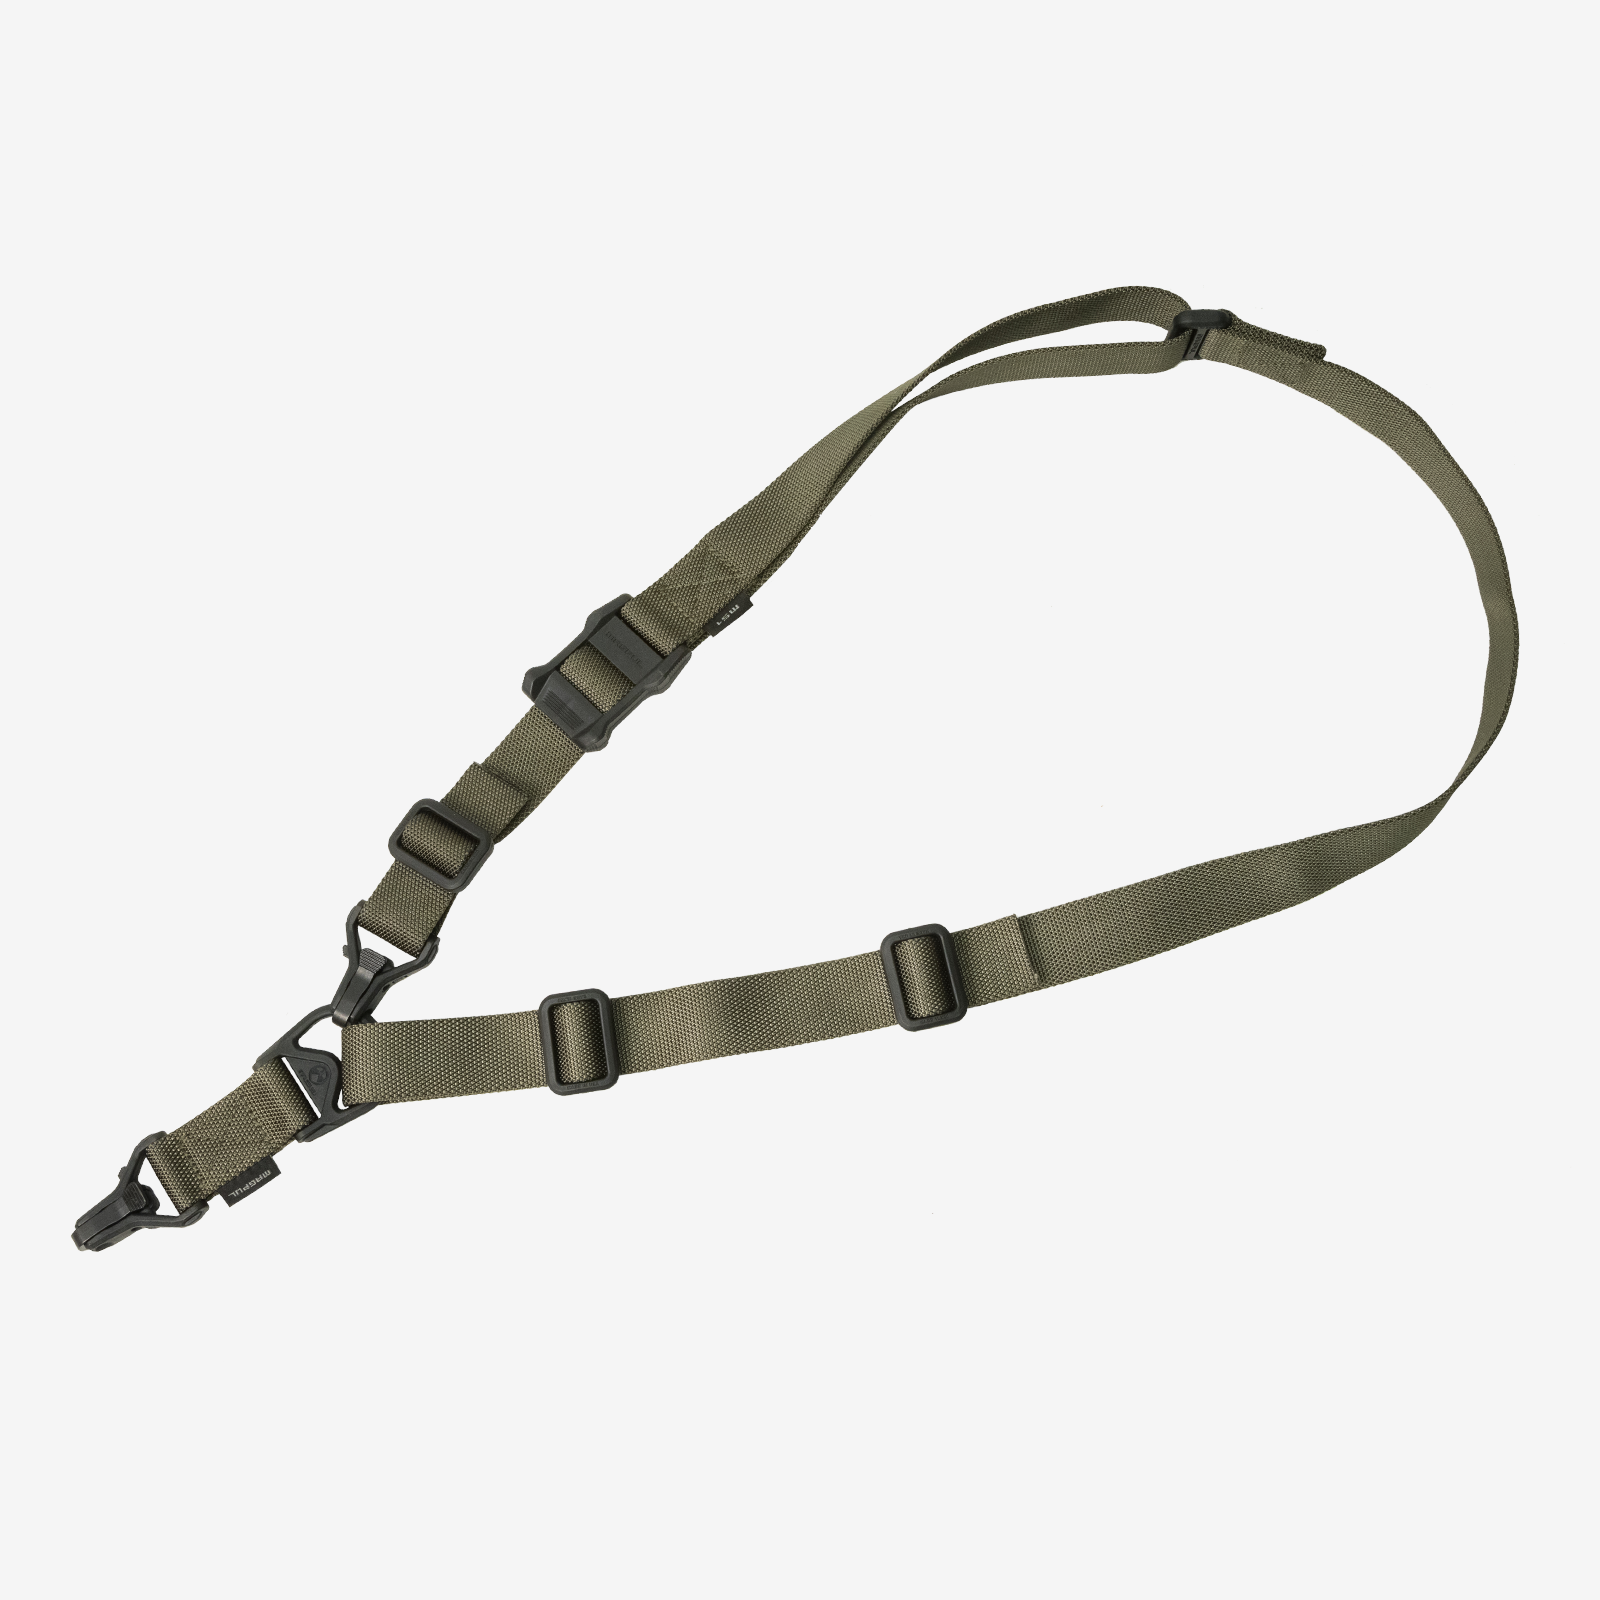 Magpul MS3 Gen 2, 1 Or 2 Point Sling